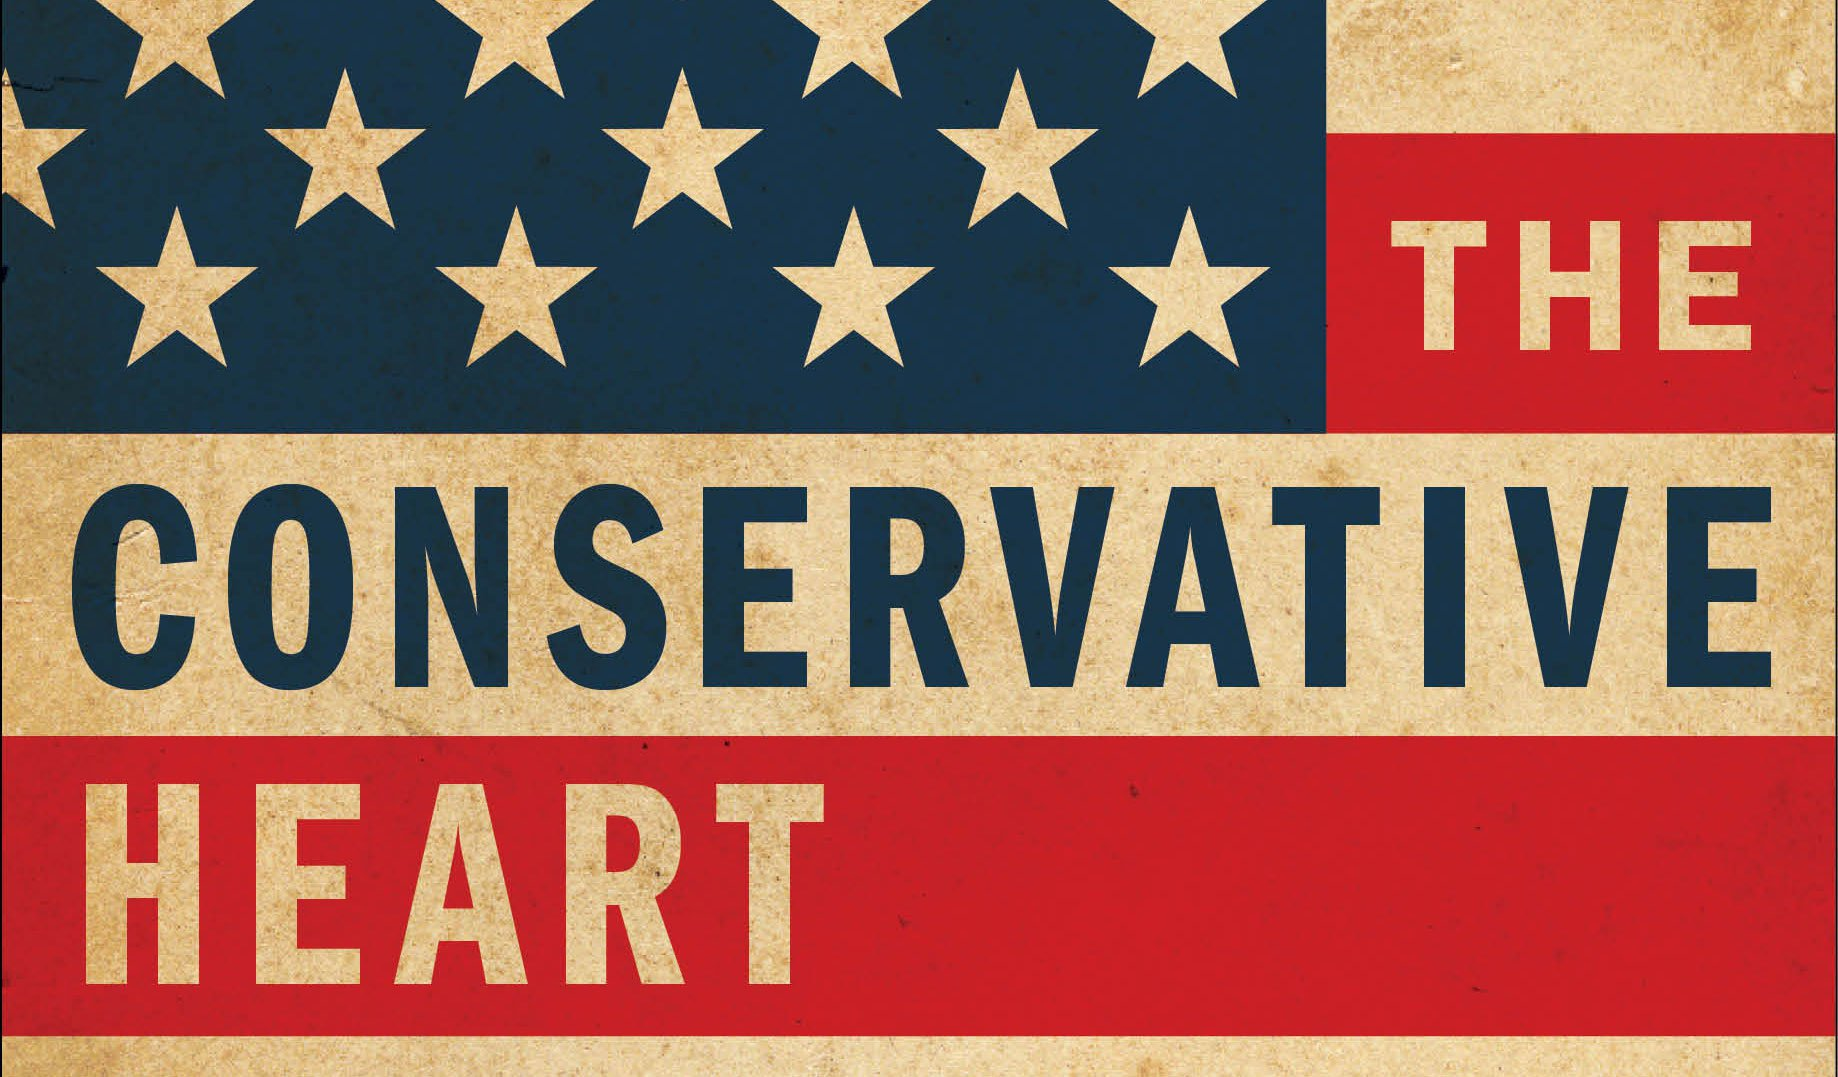 The Conservative Heart Meridian Magazine